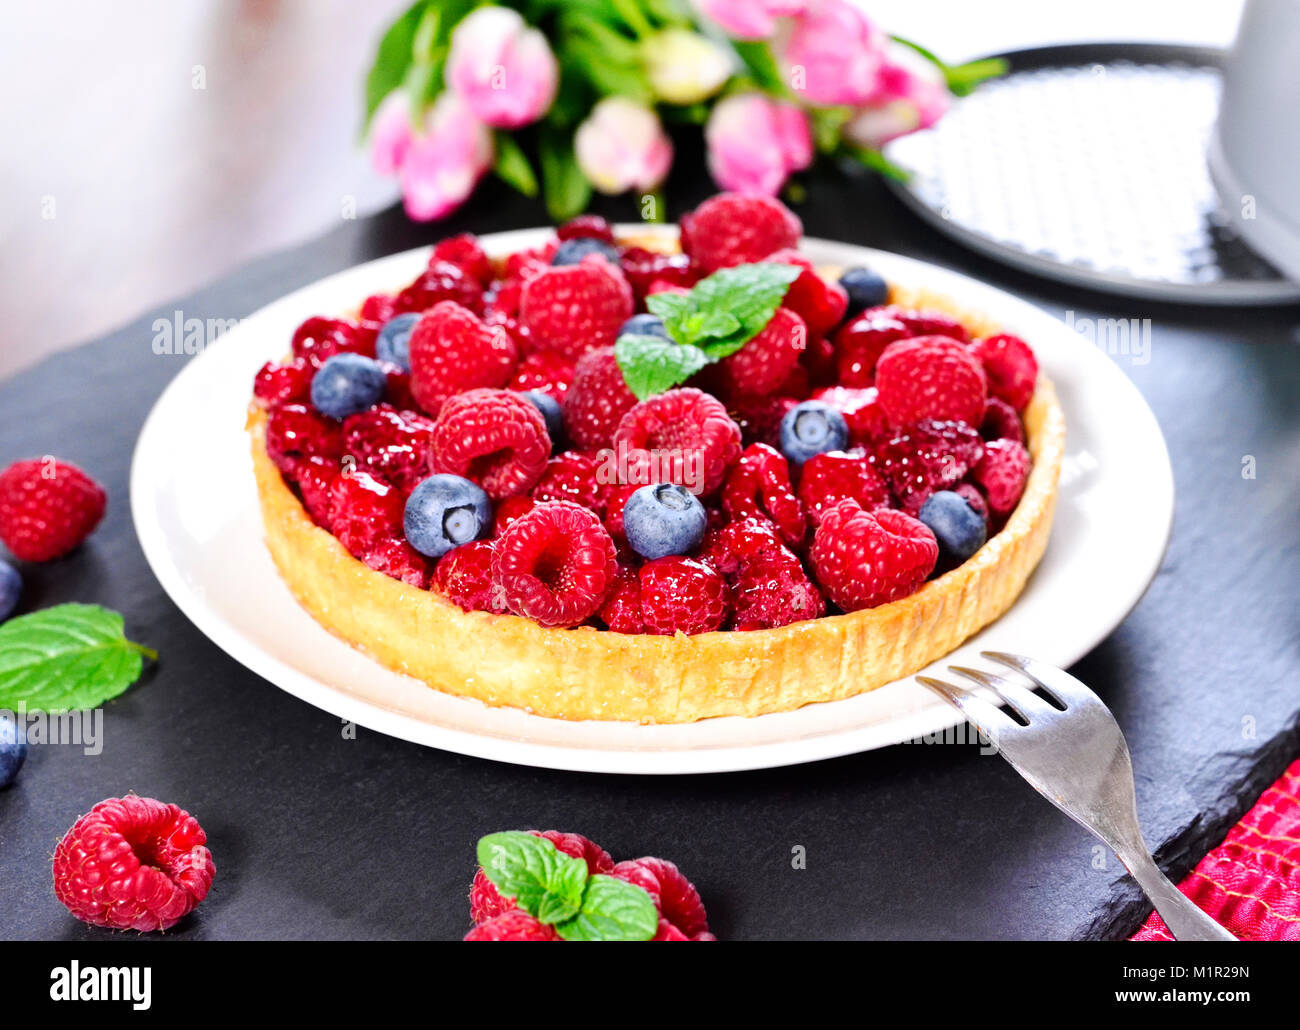 Beautiful Fruit Cake Fresh Birthday With Raspberries And Blueberries Biscuit Pie Decoration Fruitcake Summer Tart On A Table